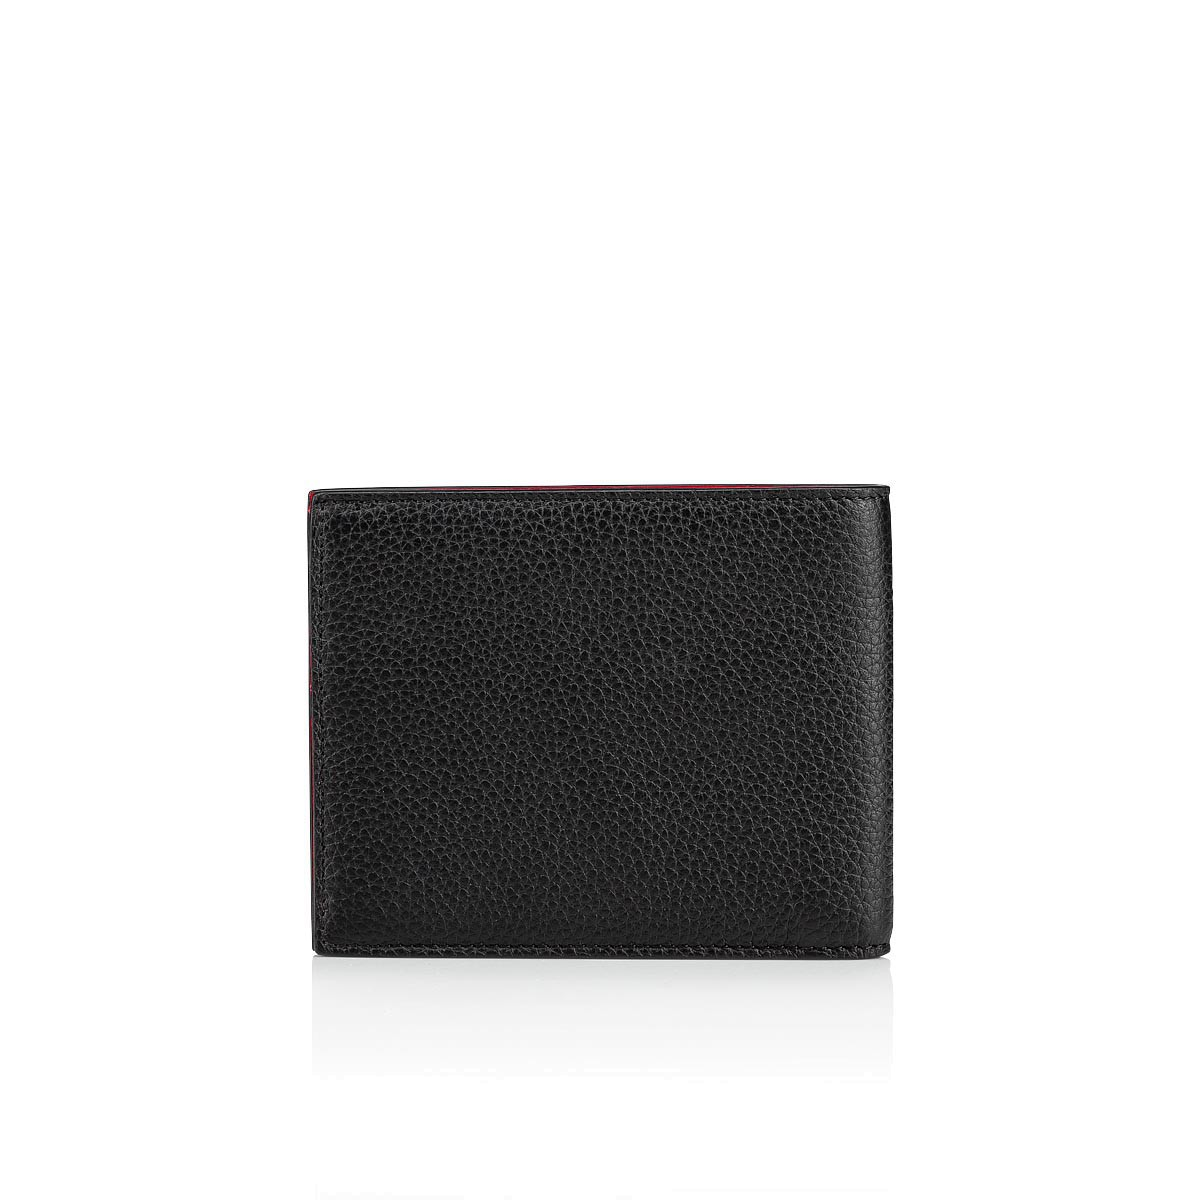 饰品 - M Coolcard Classic Leather - Christian Louboutin